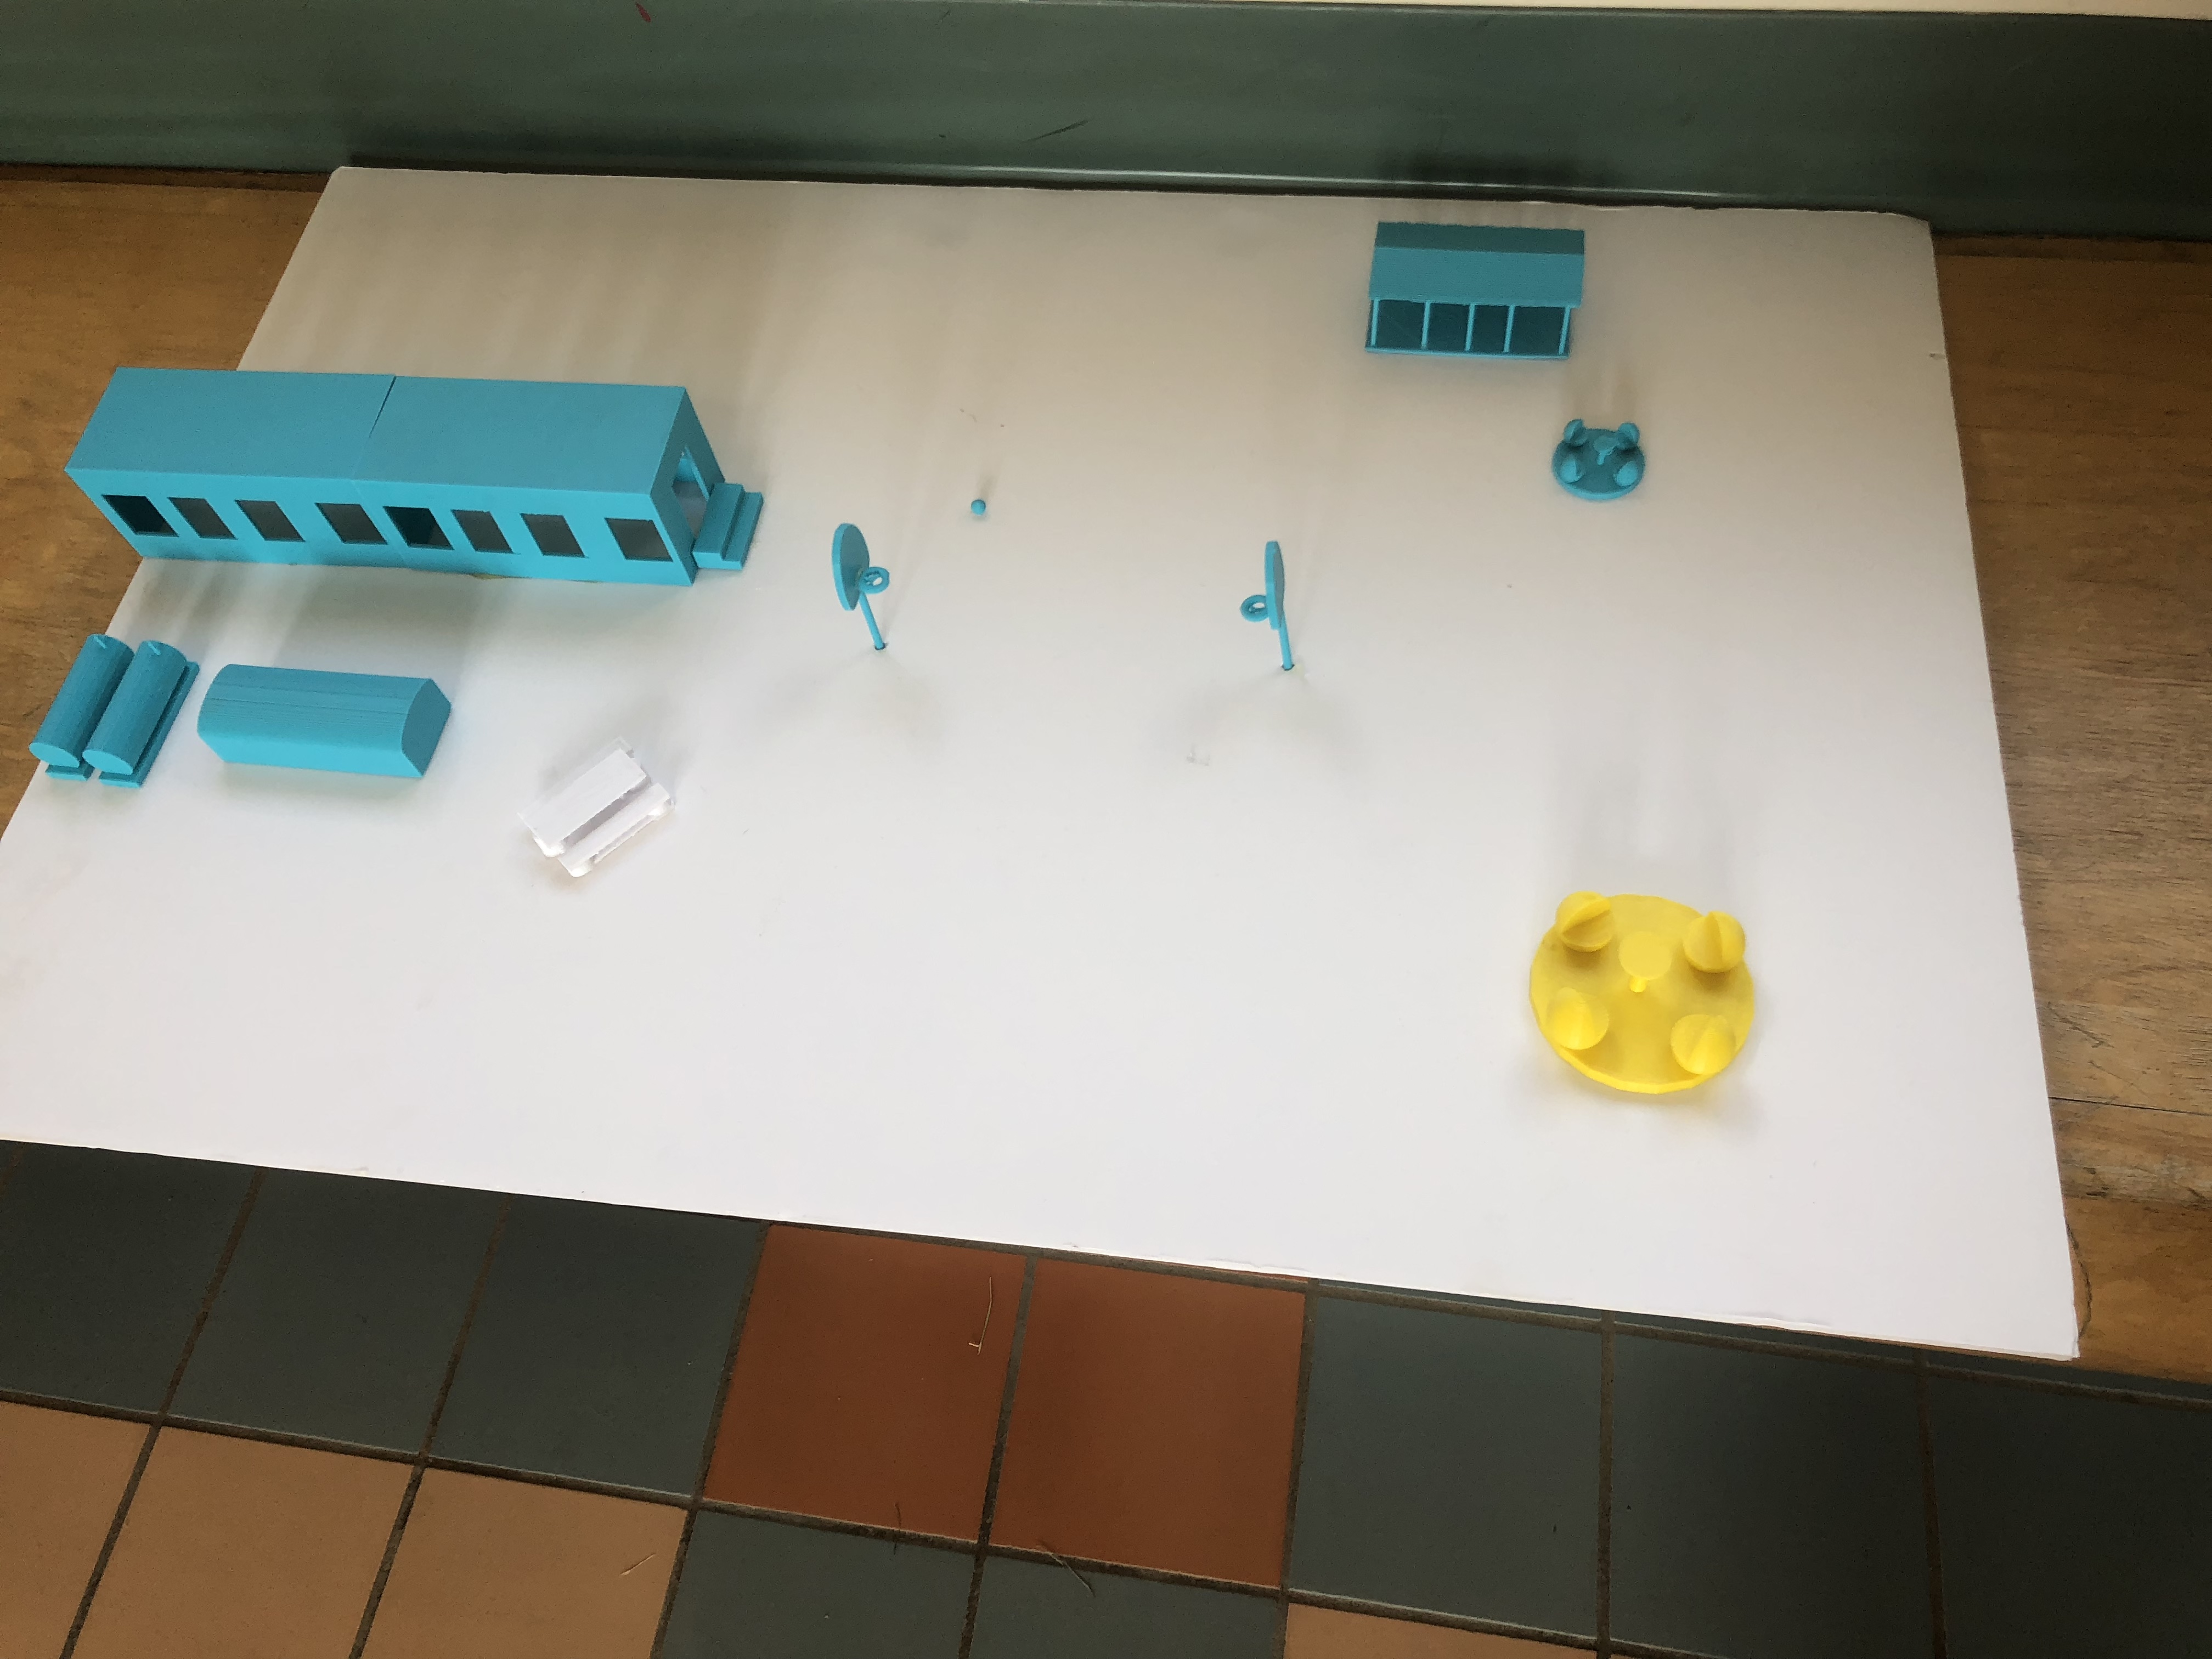 3D printed model of school playground